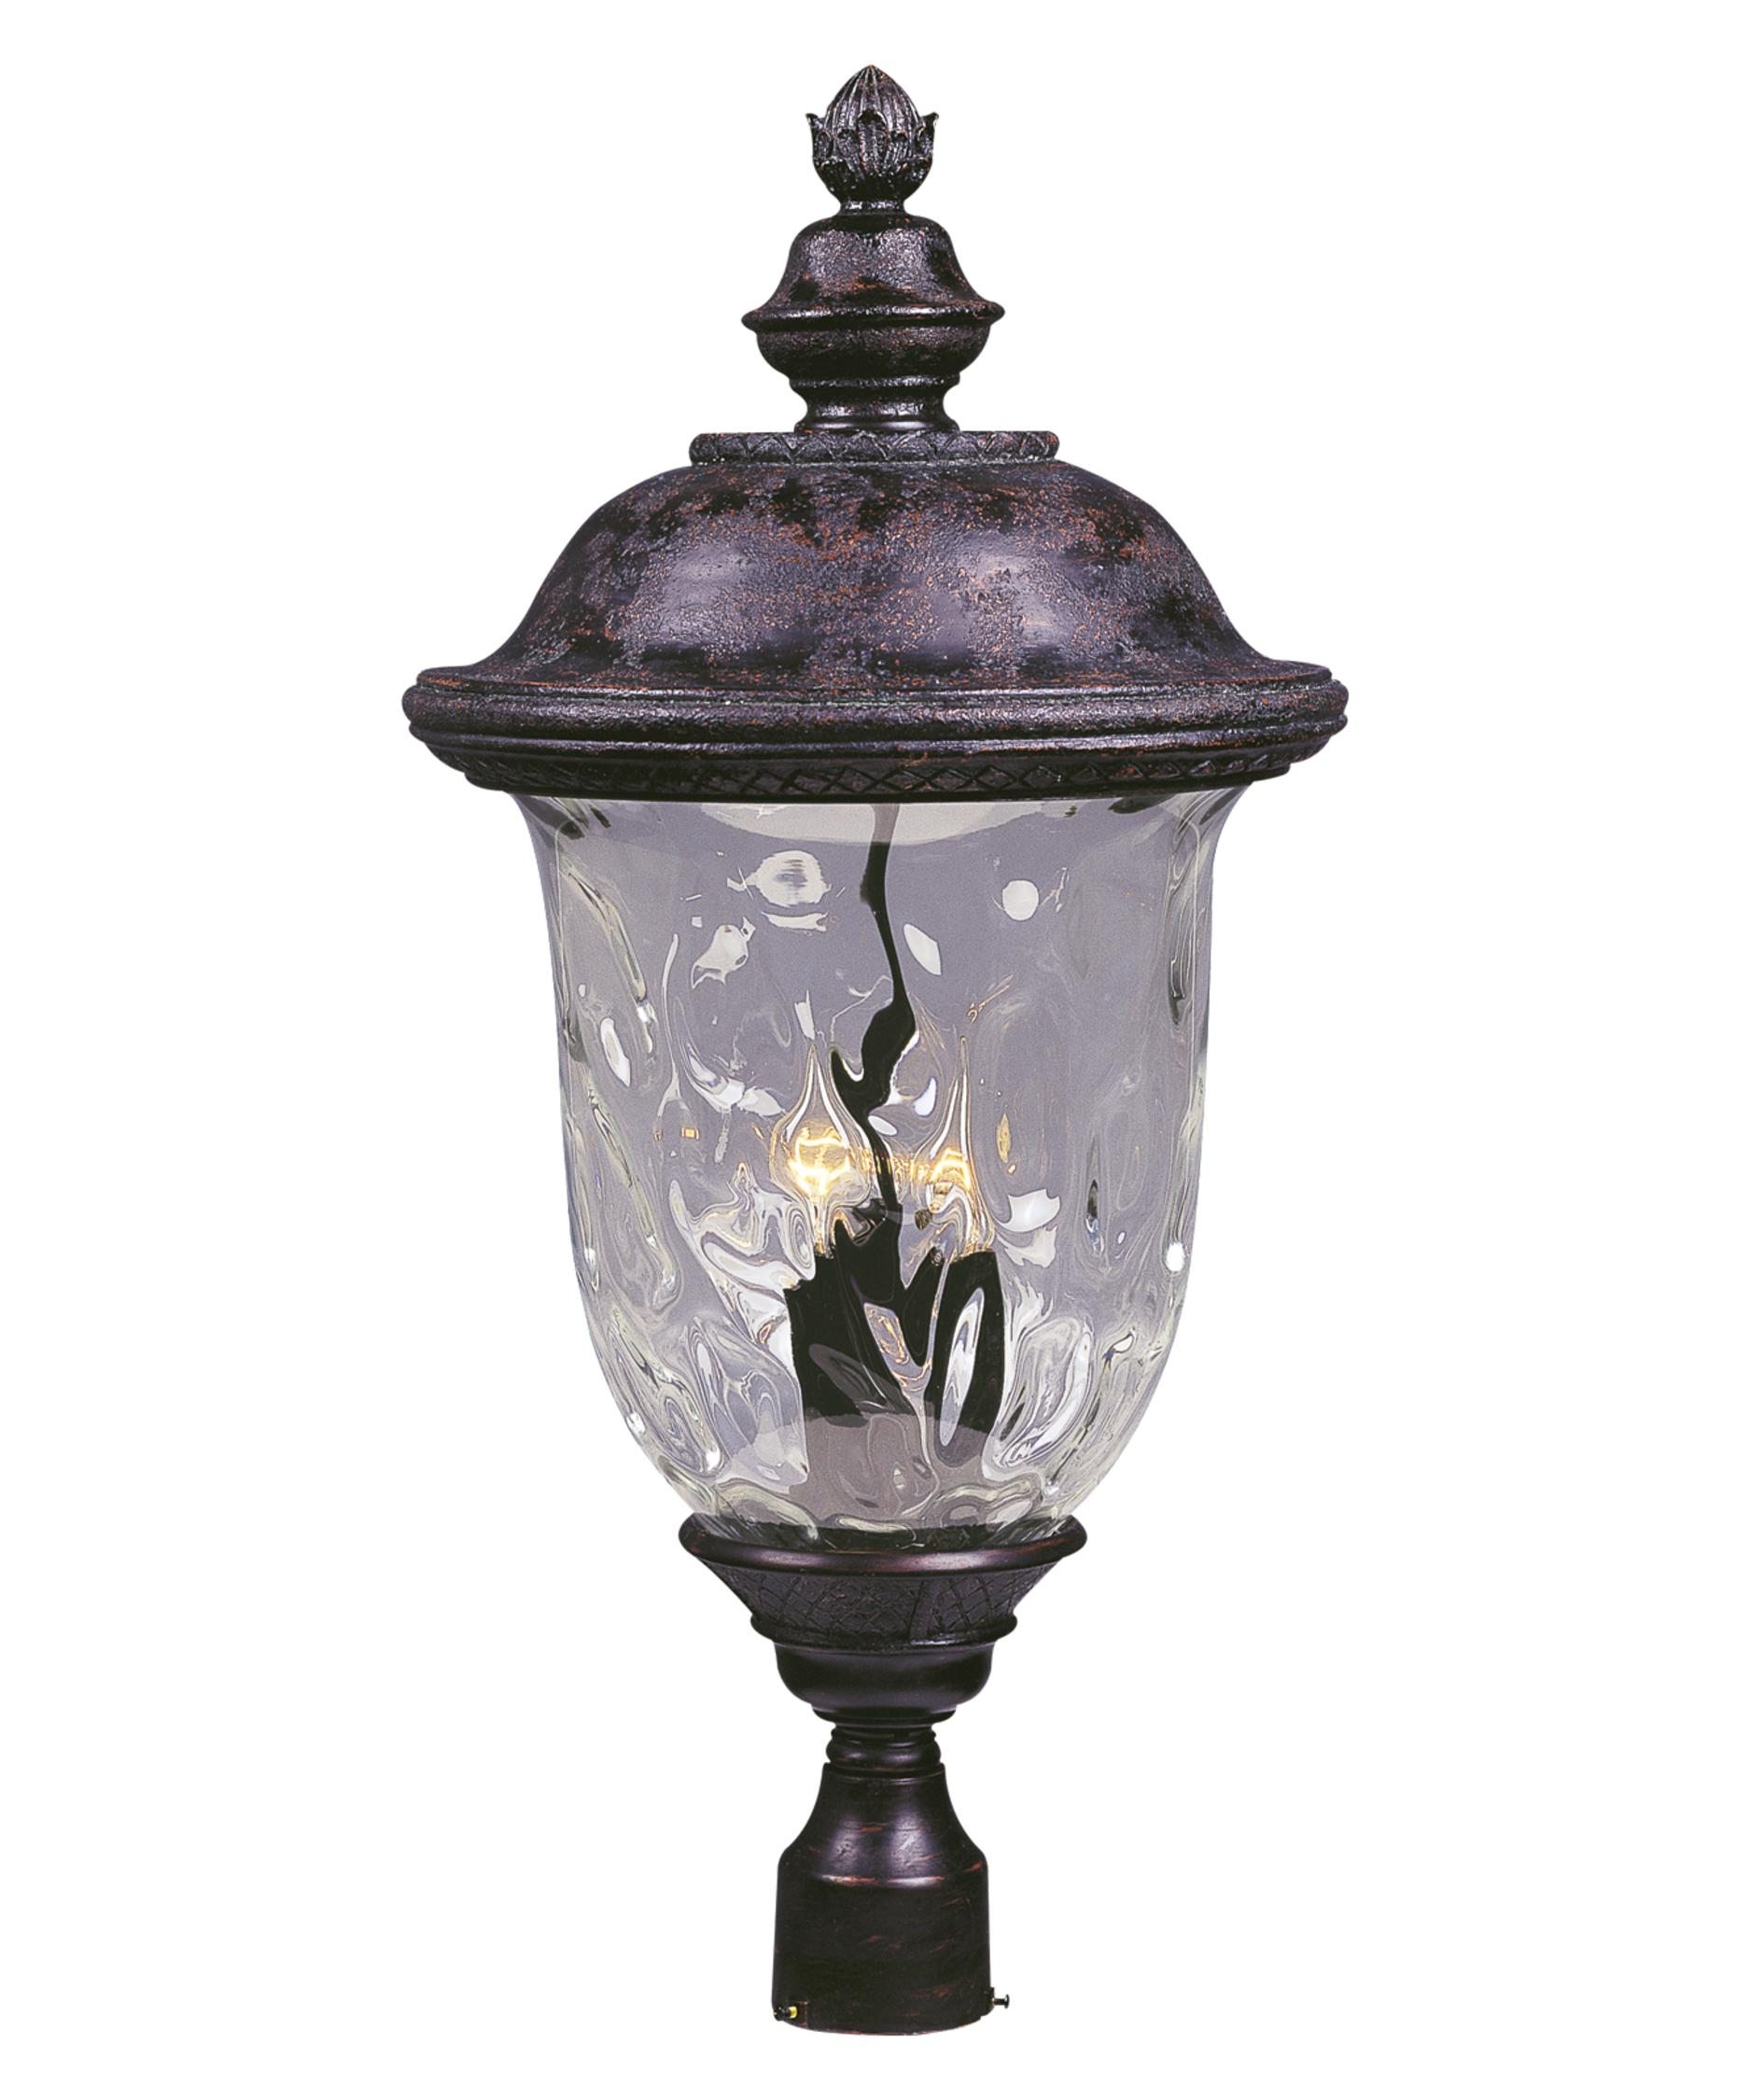 Superior Maxim Lighting 3421 Carriage House DC 14 Inch Wide 3 Light Outdoor Post Lamp  | Capitol Lighting 1 800lighting.com